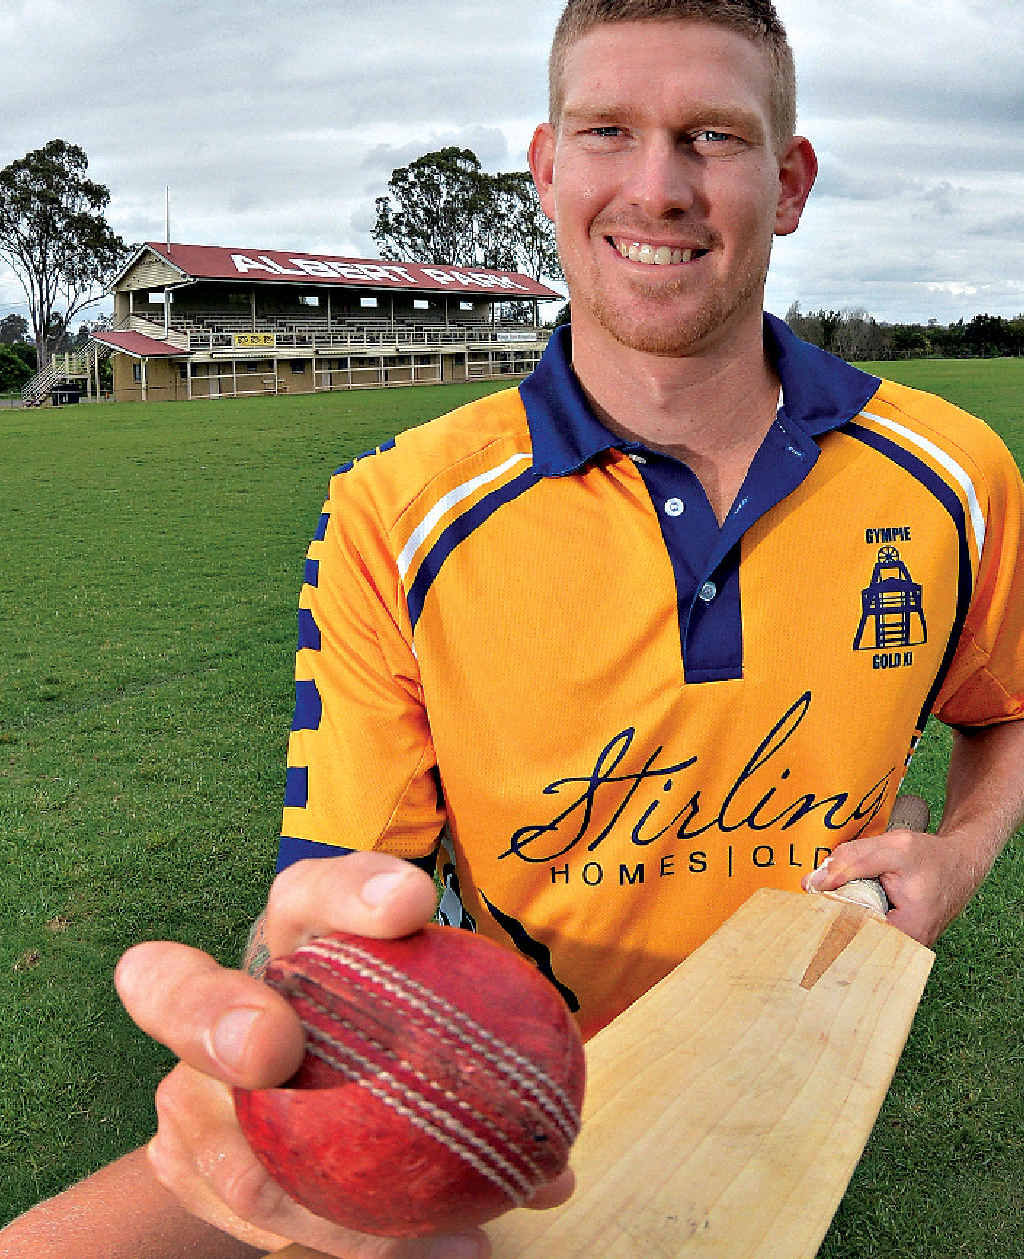 Josh Brady scored 120 runs during Gympie's innings and took 4/12 against Nambour on Saturday at Albert Park.